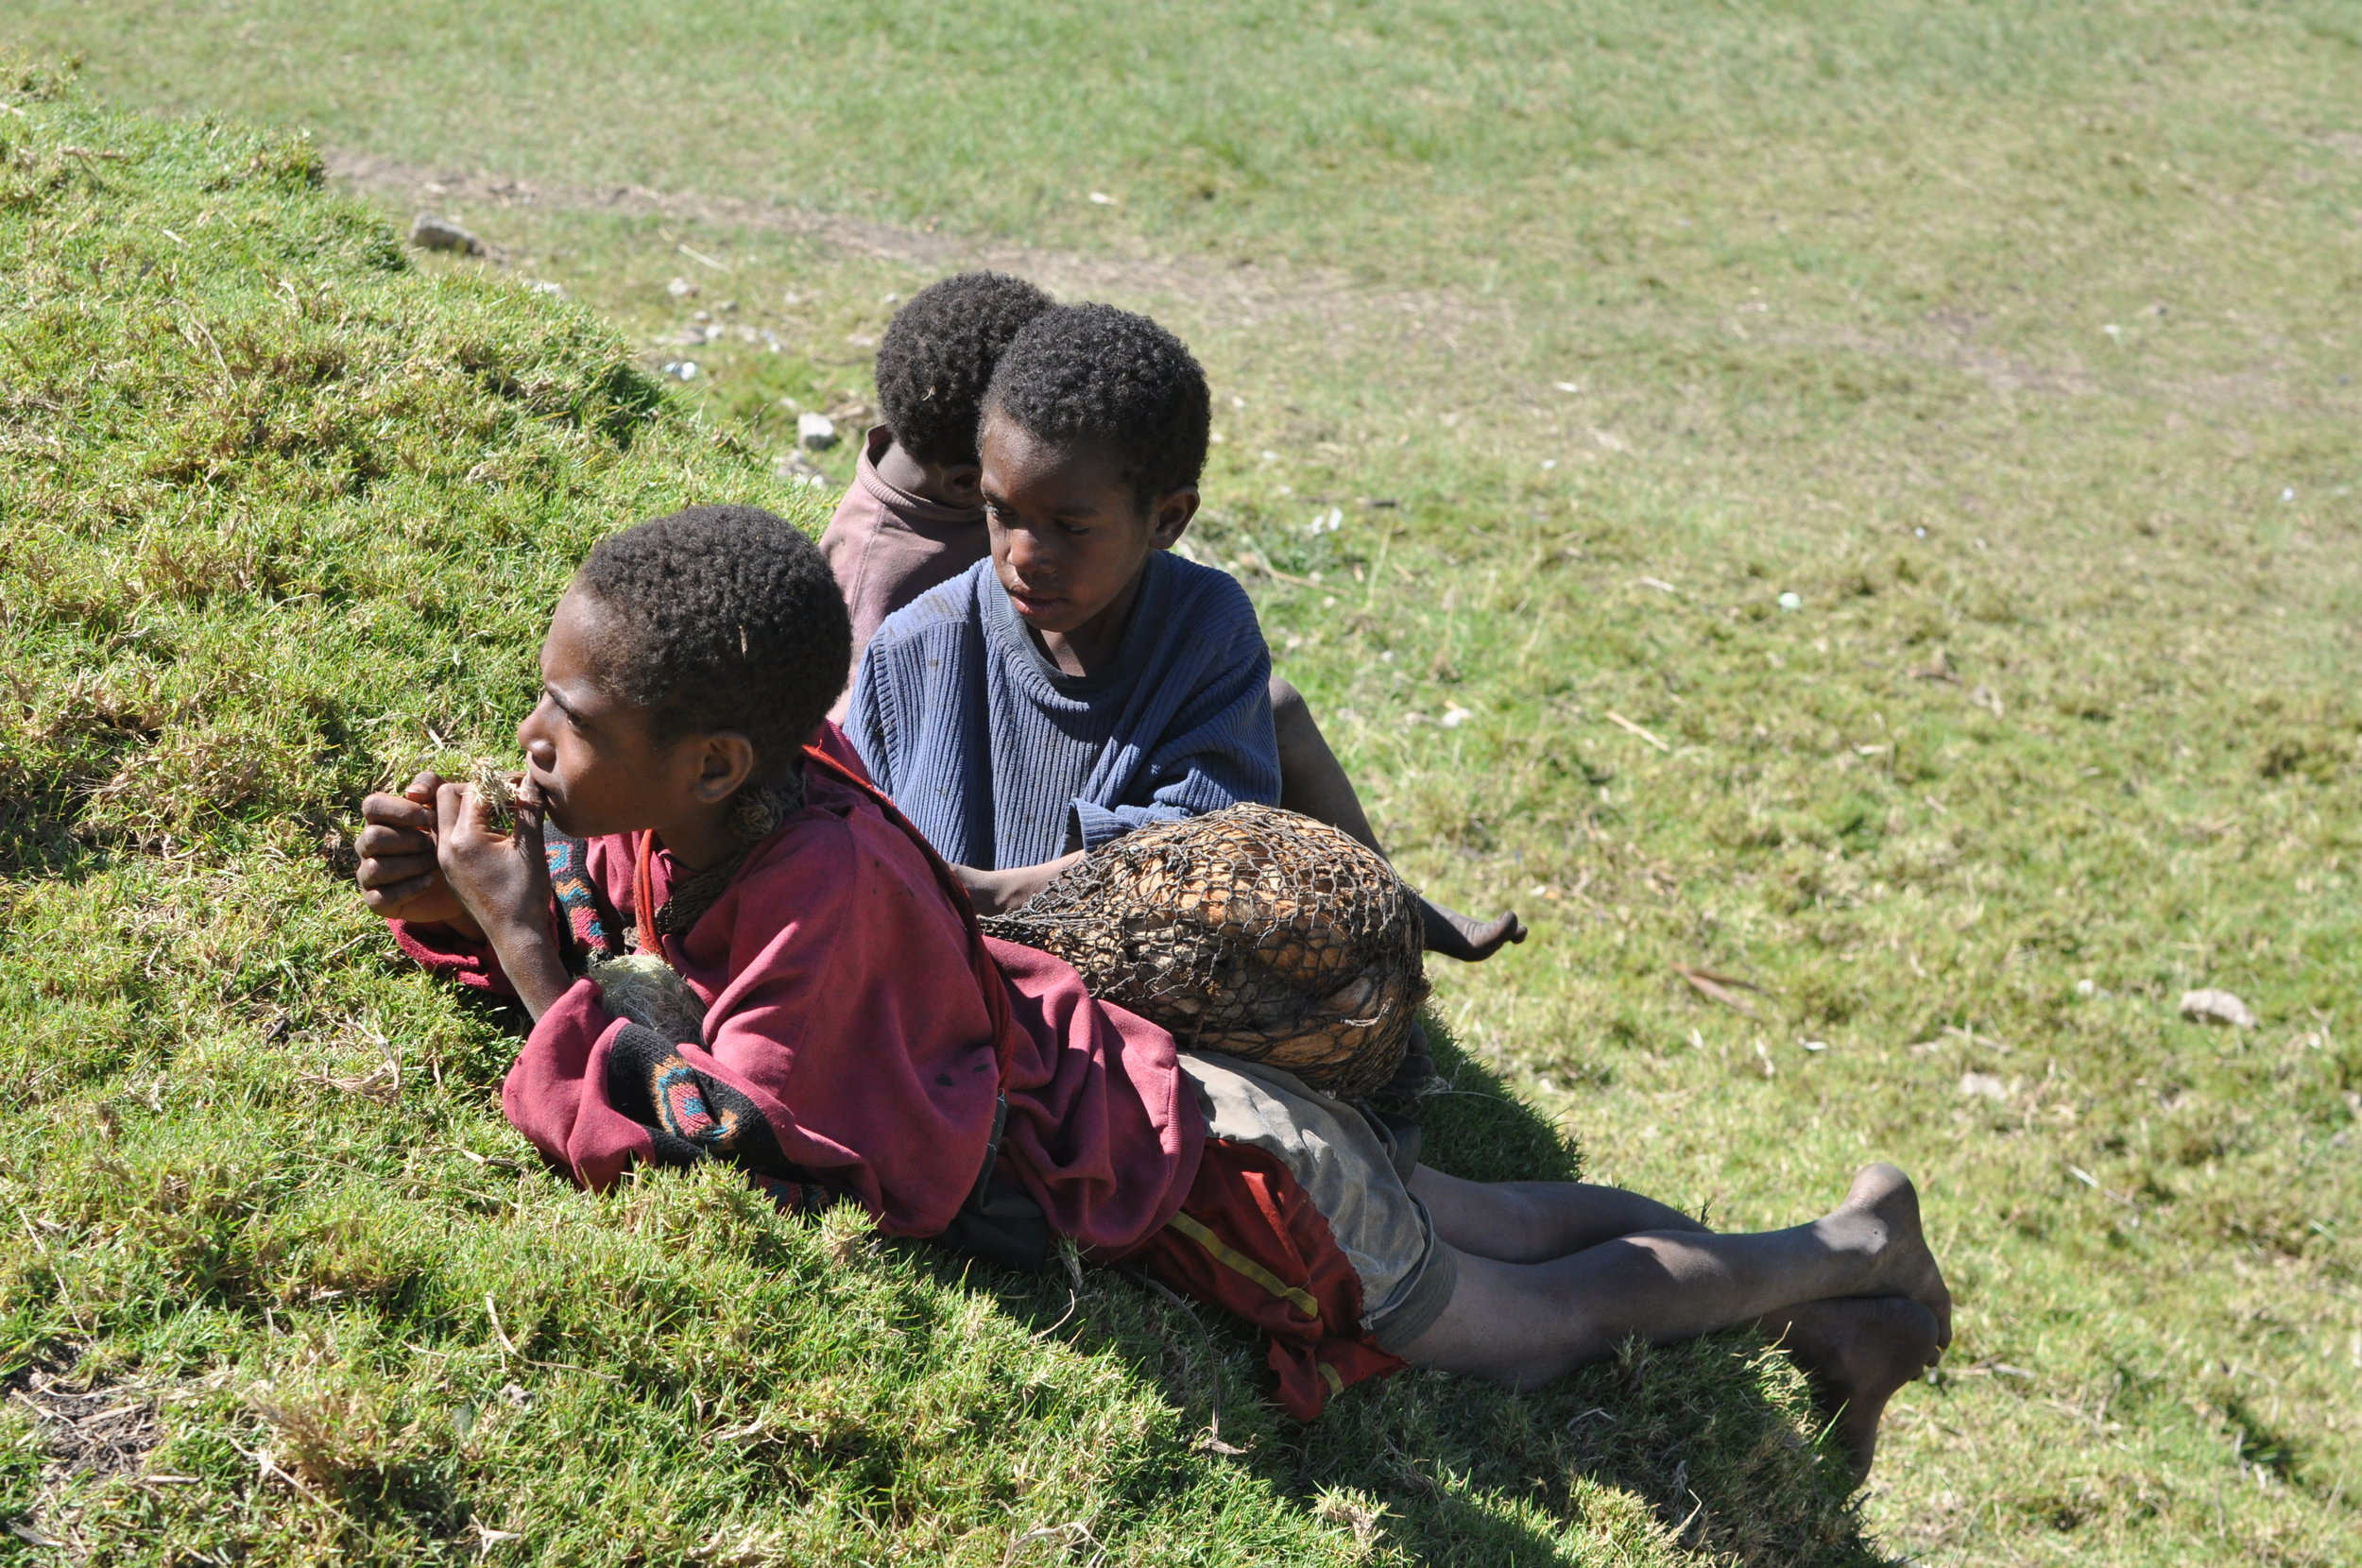 Boys on a hillside in the village center, with a netbag of sweet potatoes. Gua, 2009.